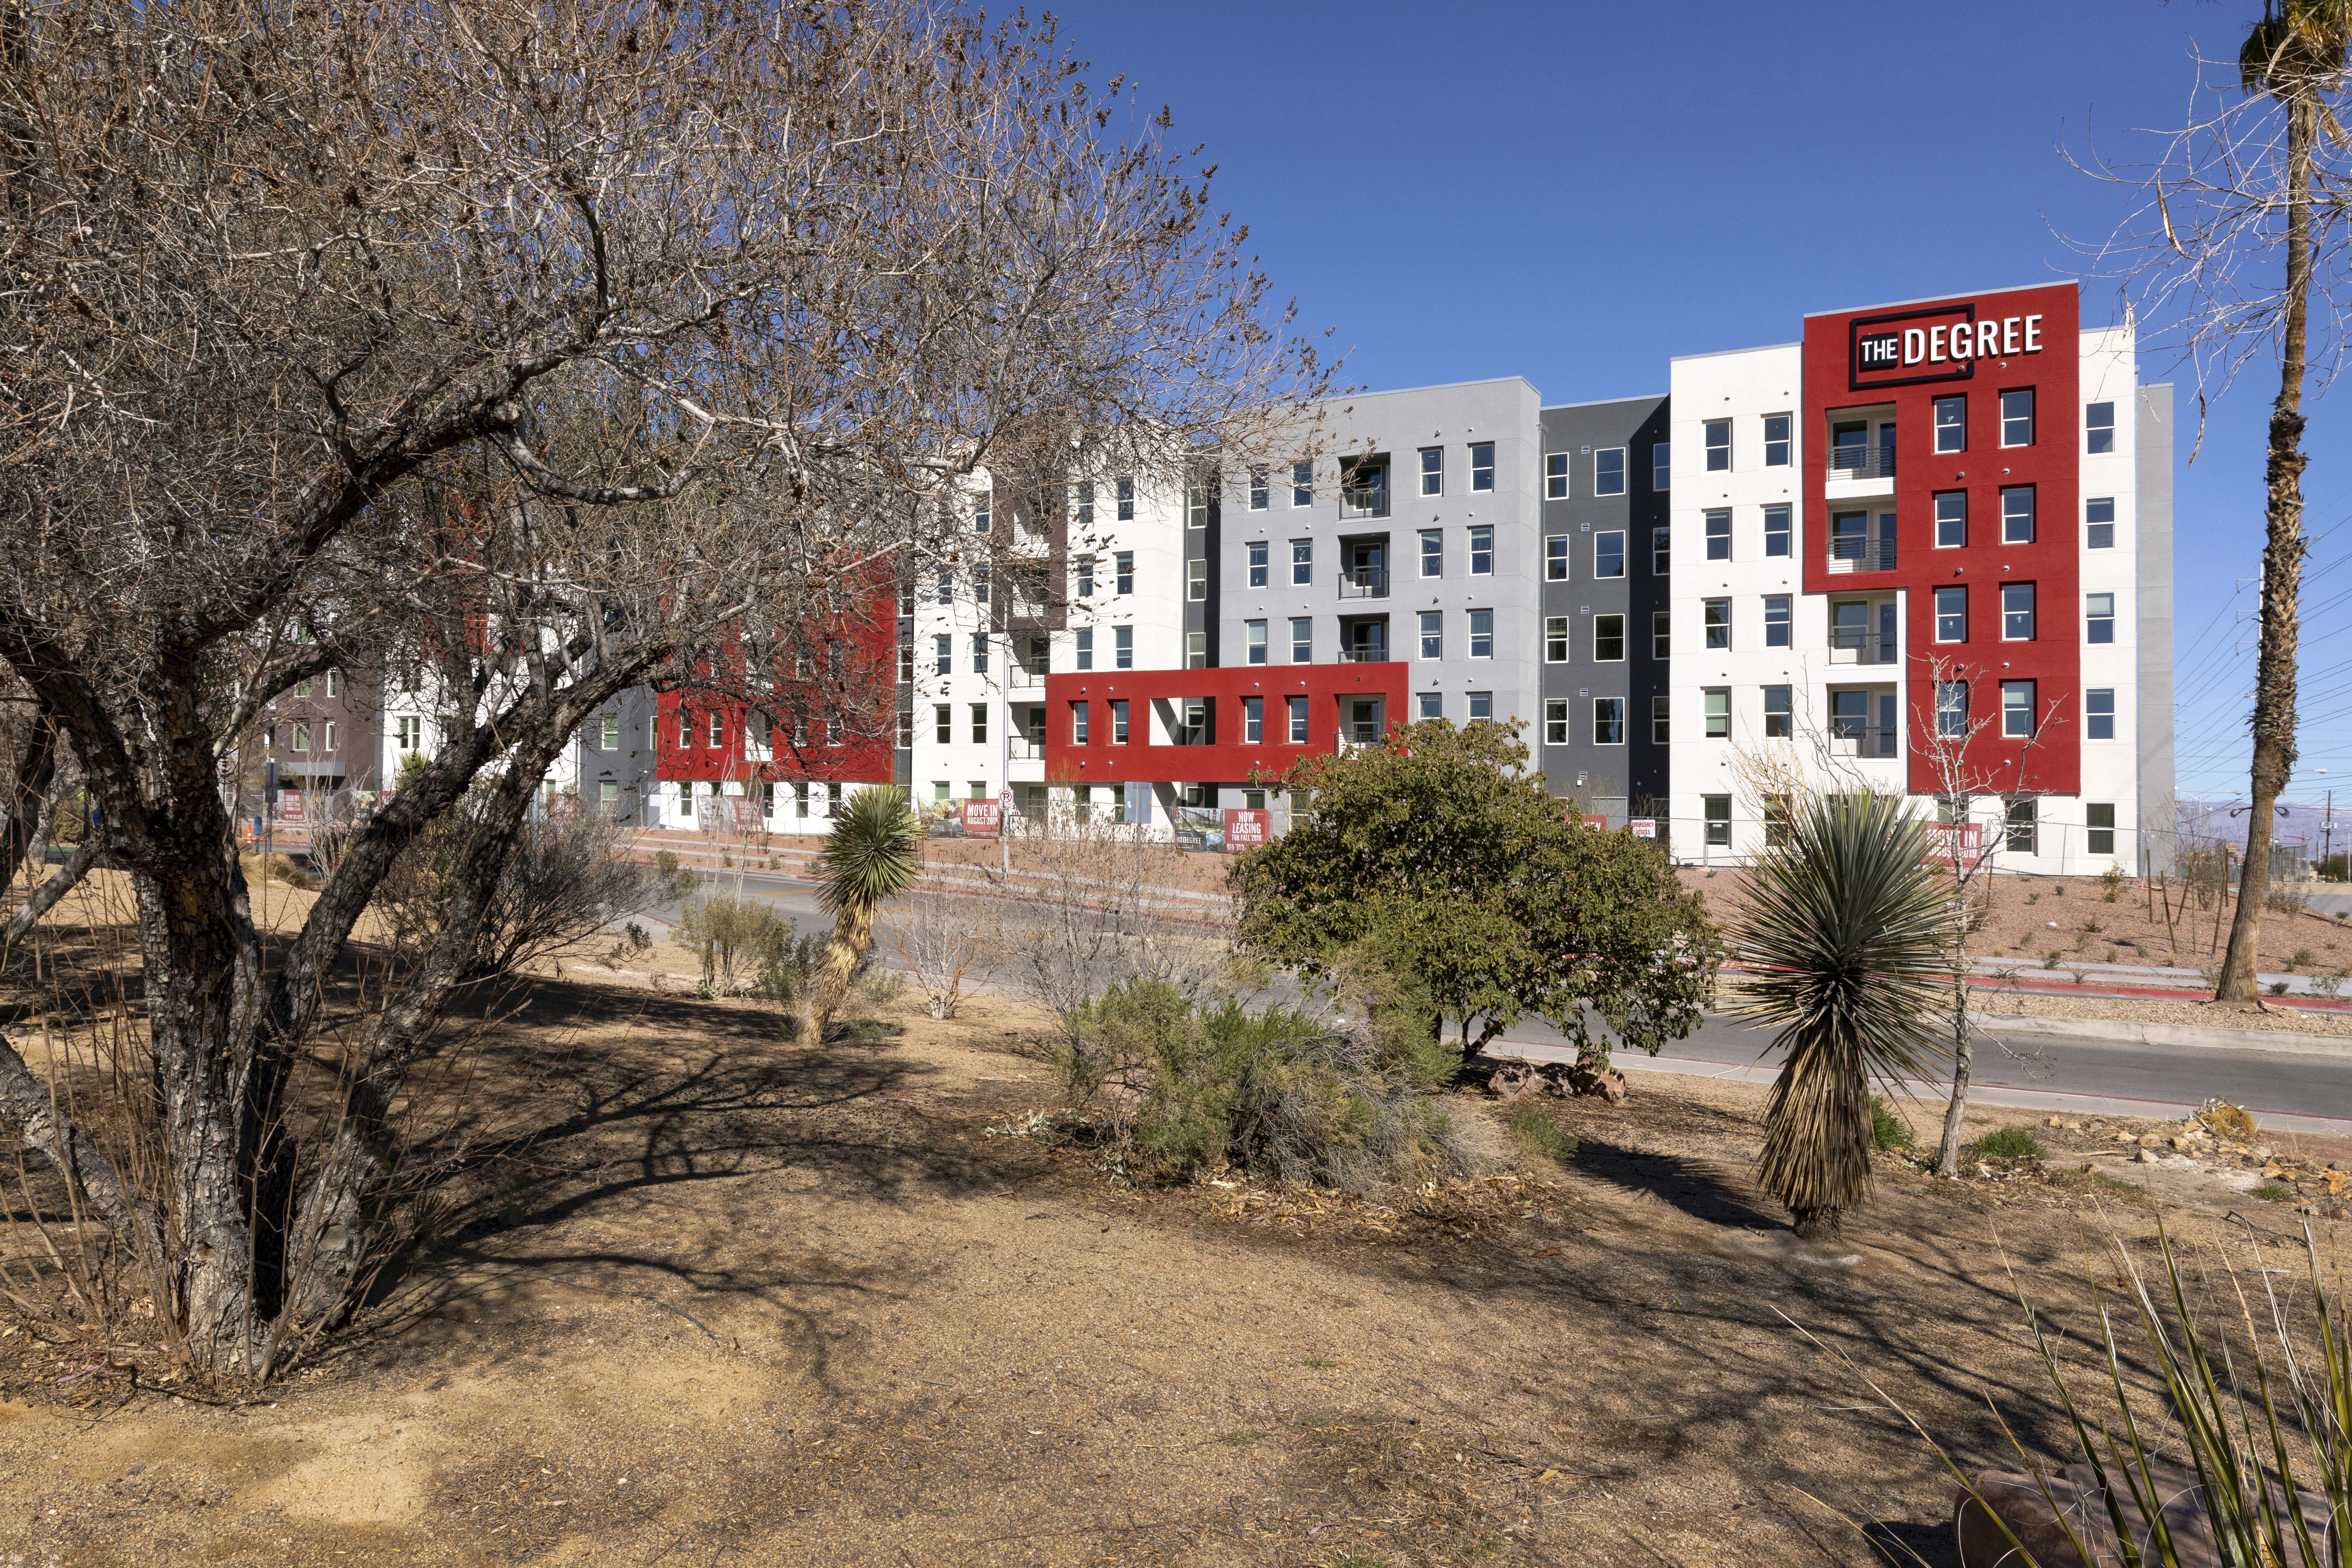 the degree dormitory building.